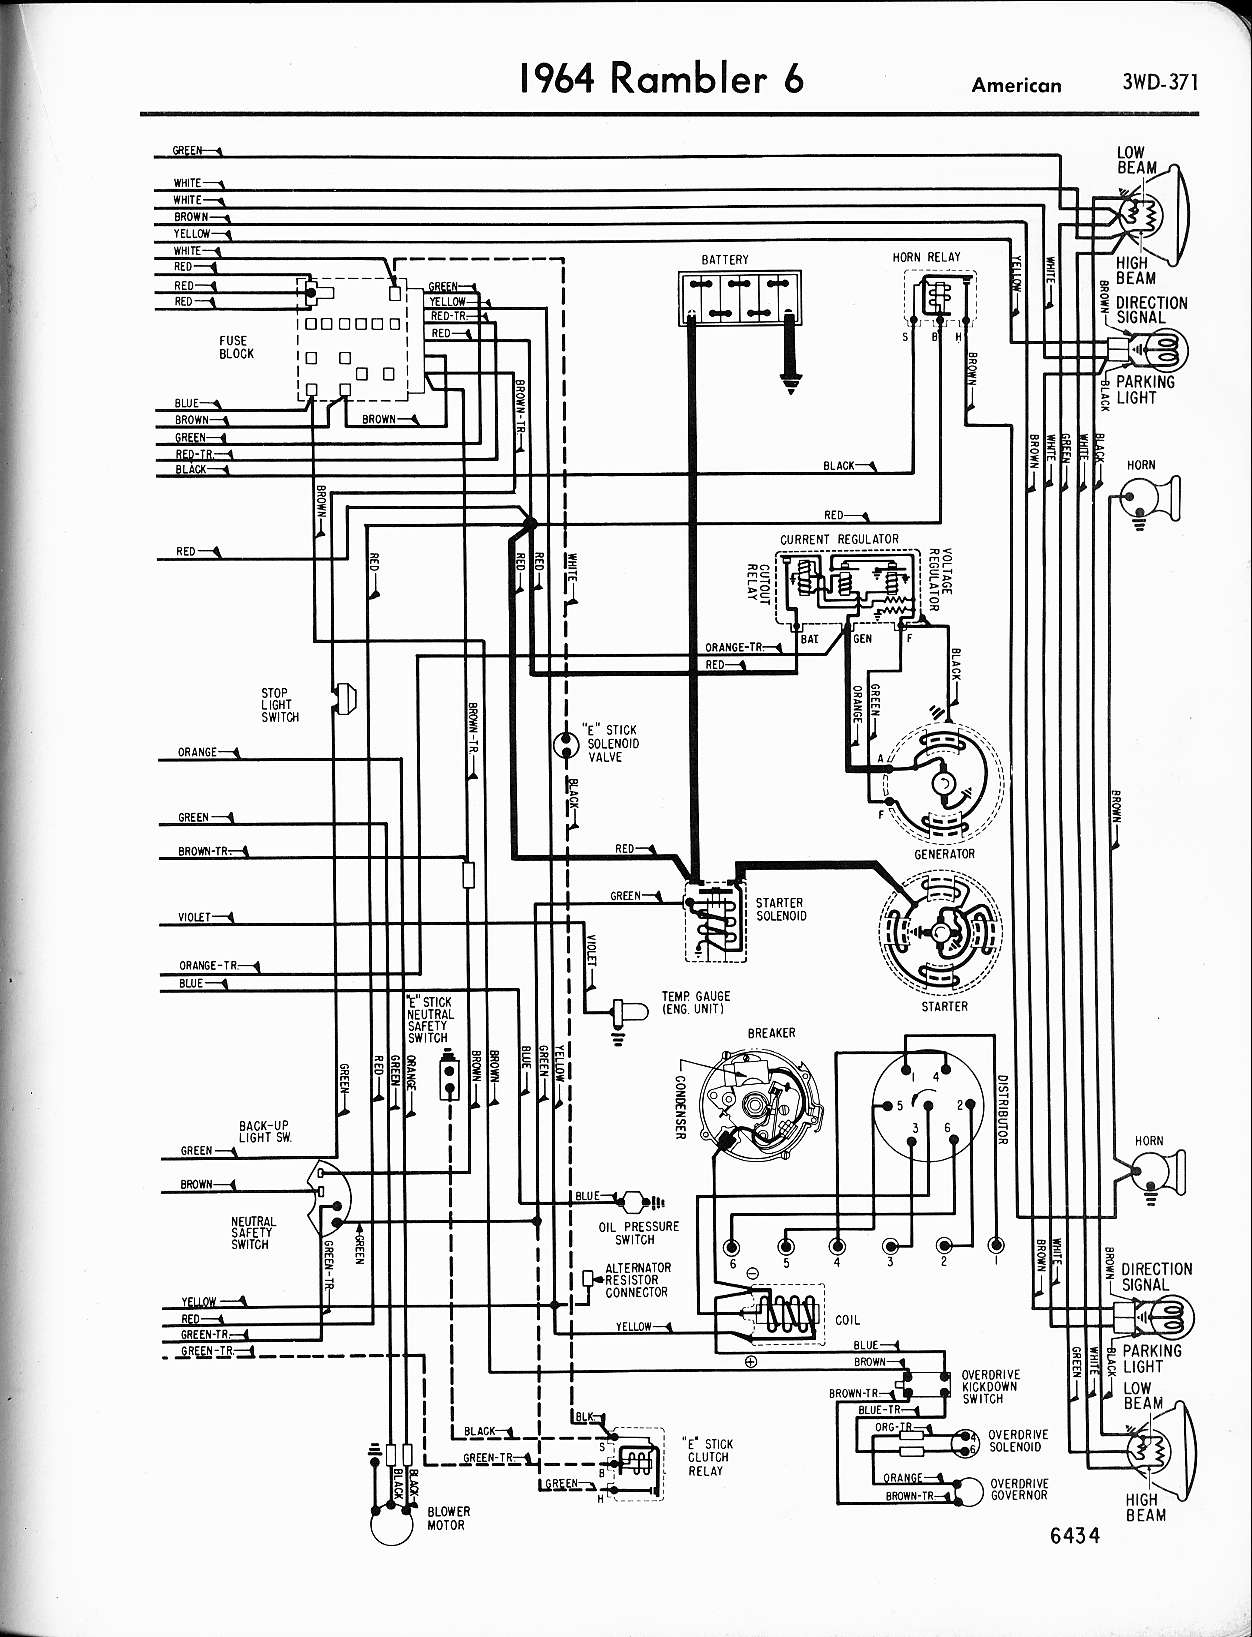 rambler wiring diagrams the old car manual project 1964 rambler 6 american right page